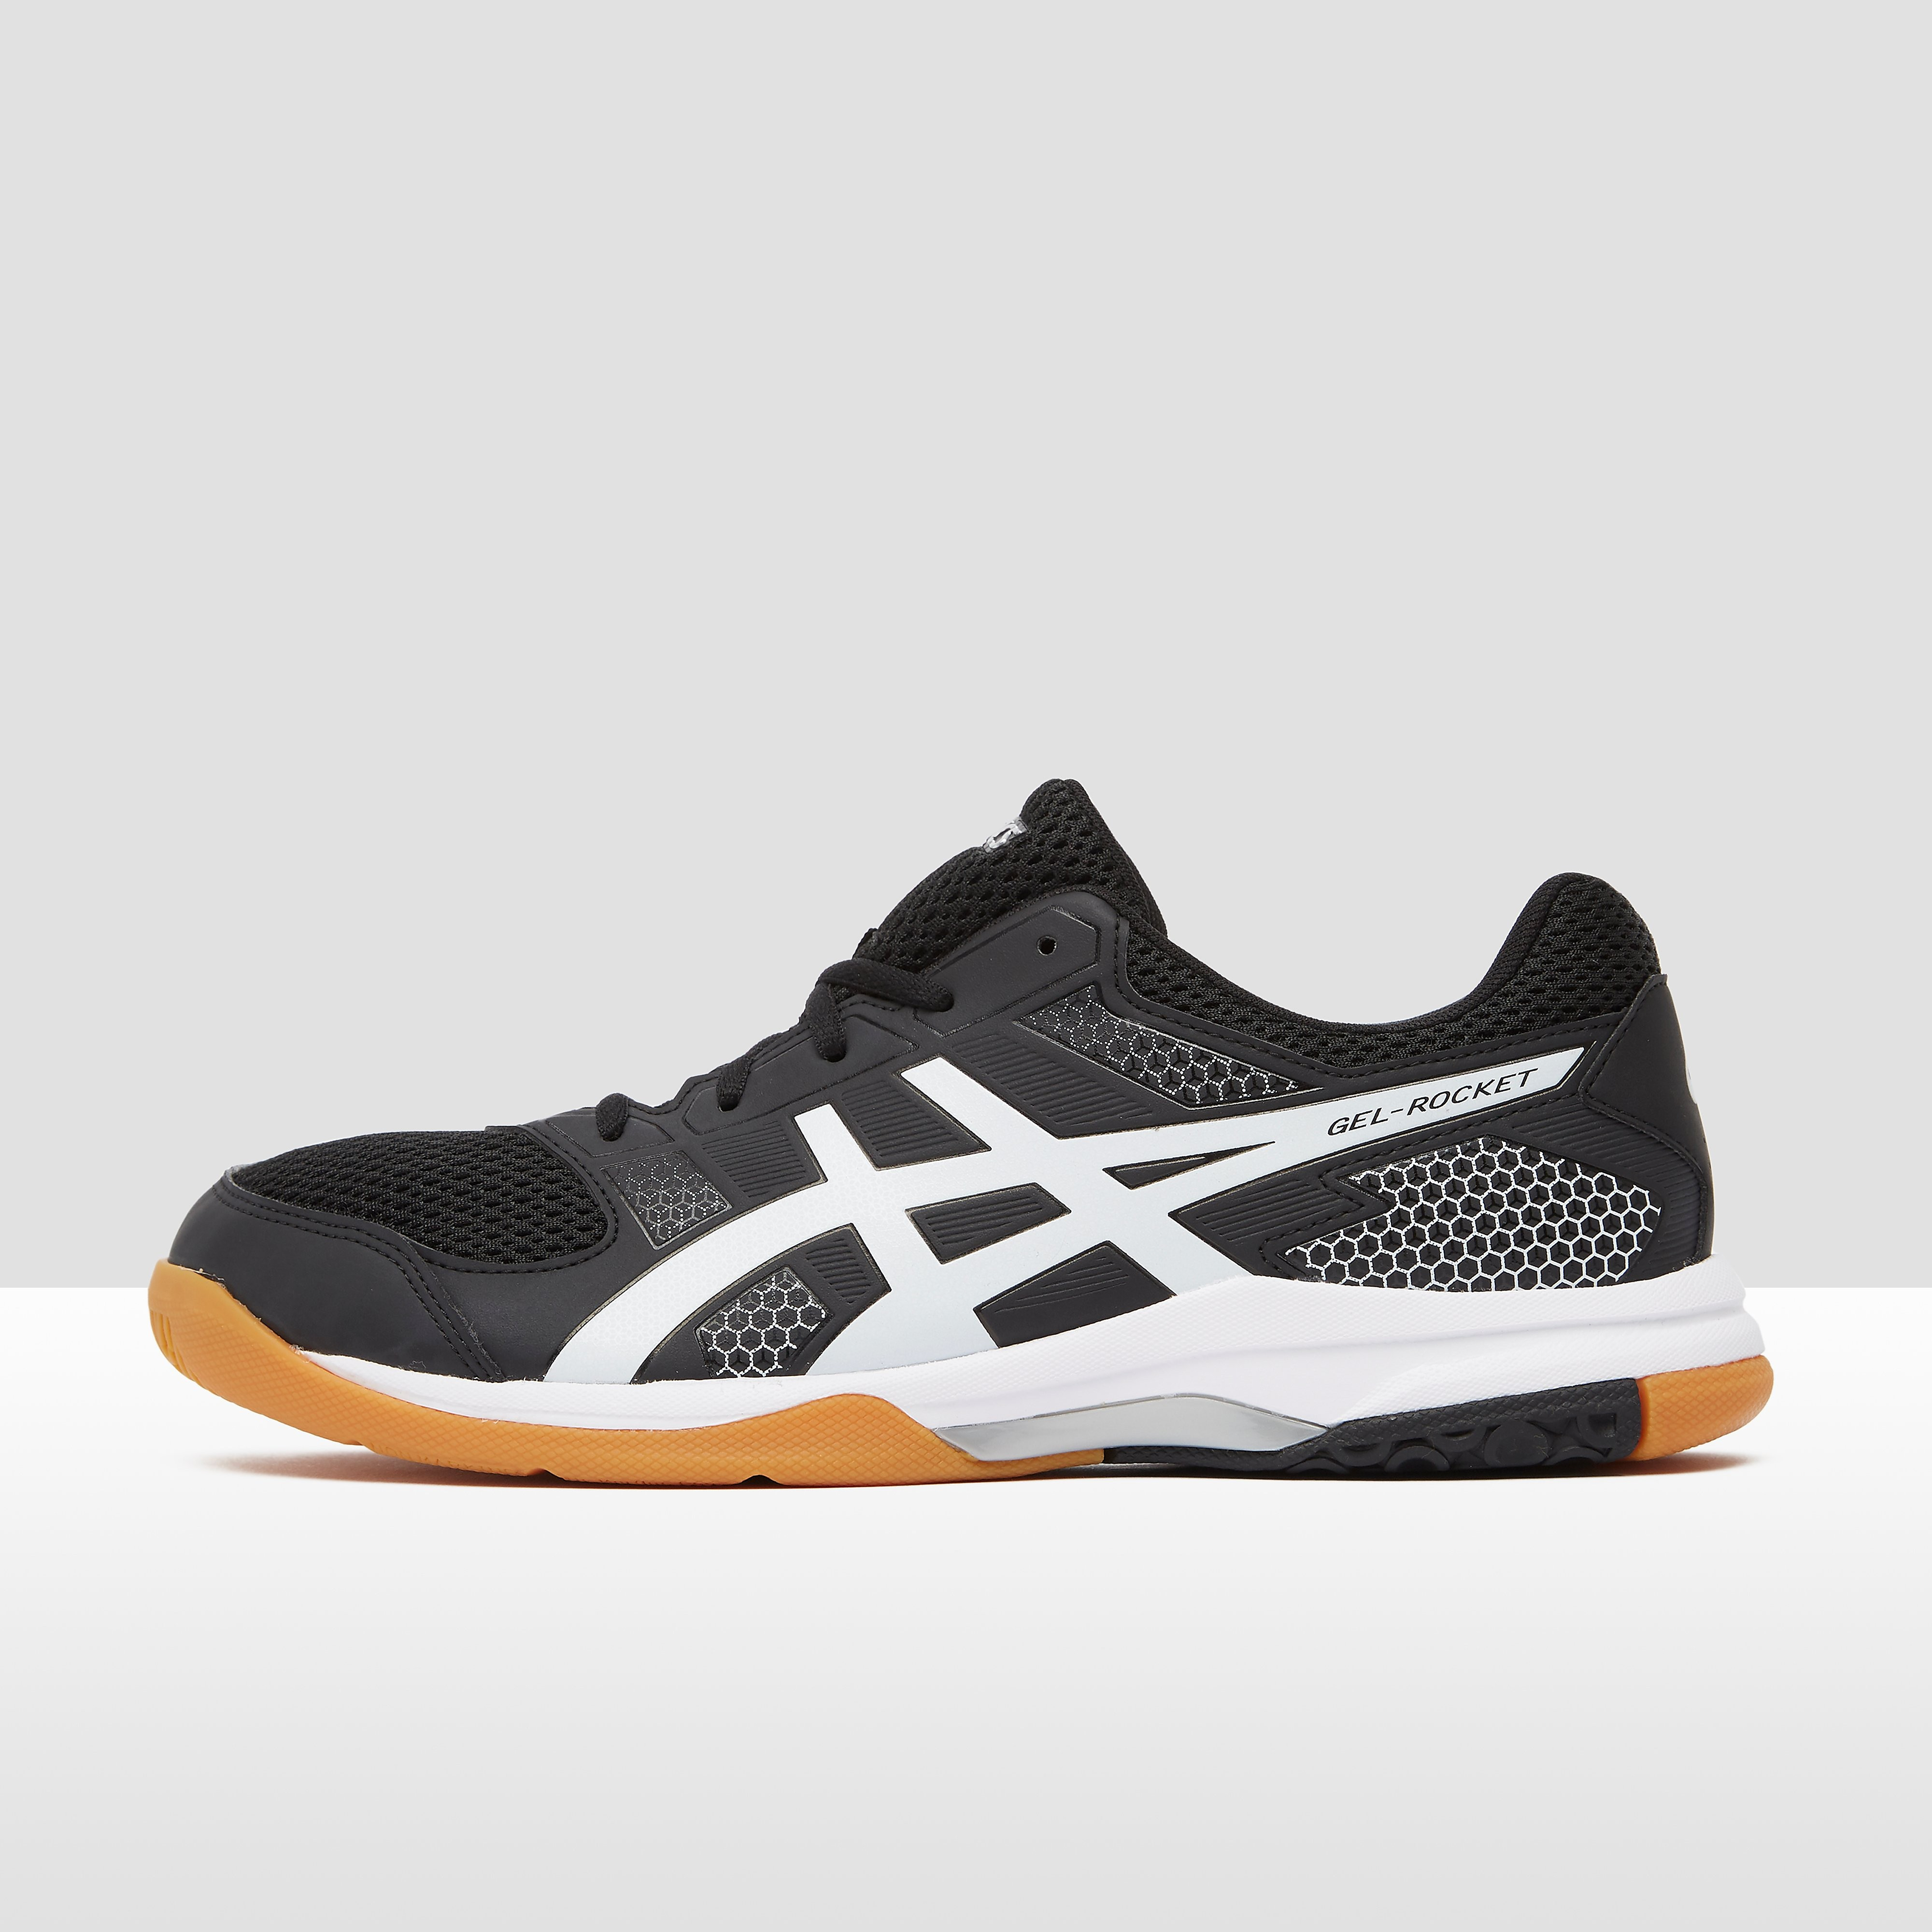 ASICS Gel-rocket 8 indoorschoenen zwart/wit heren Heren